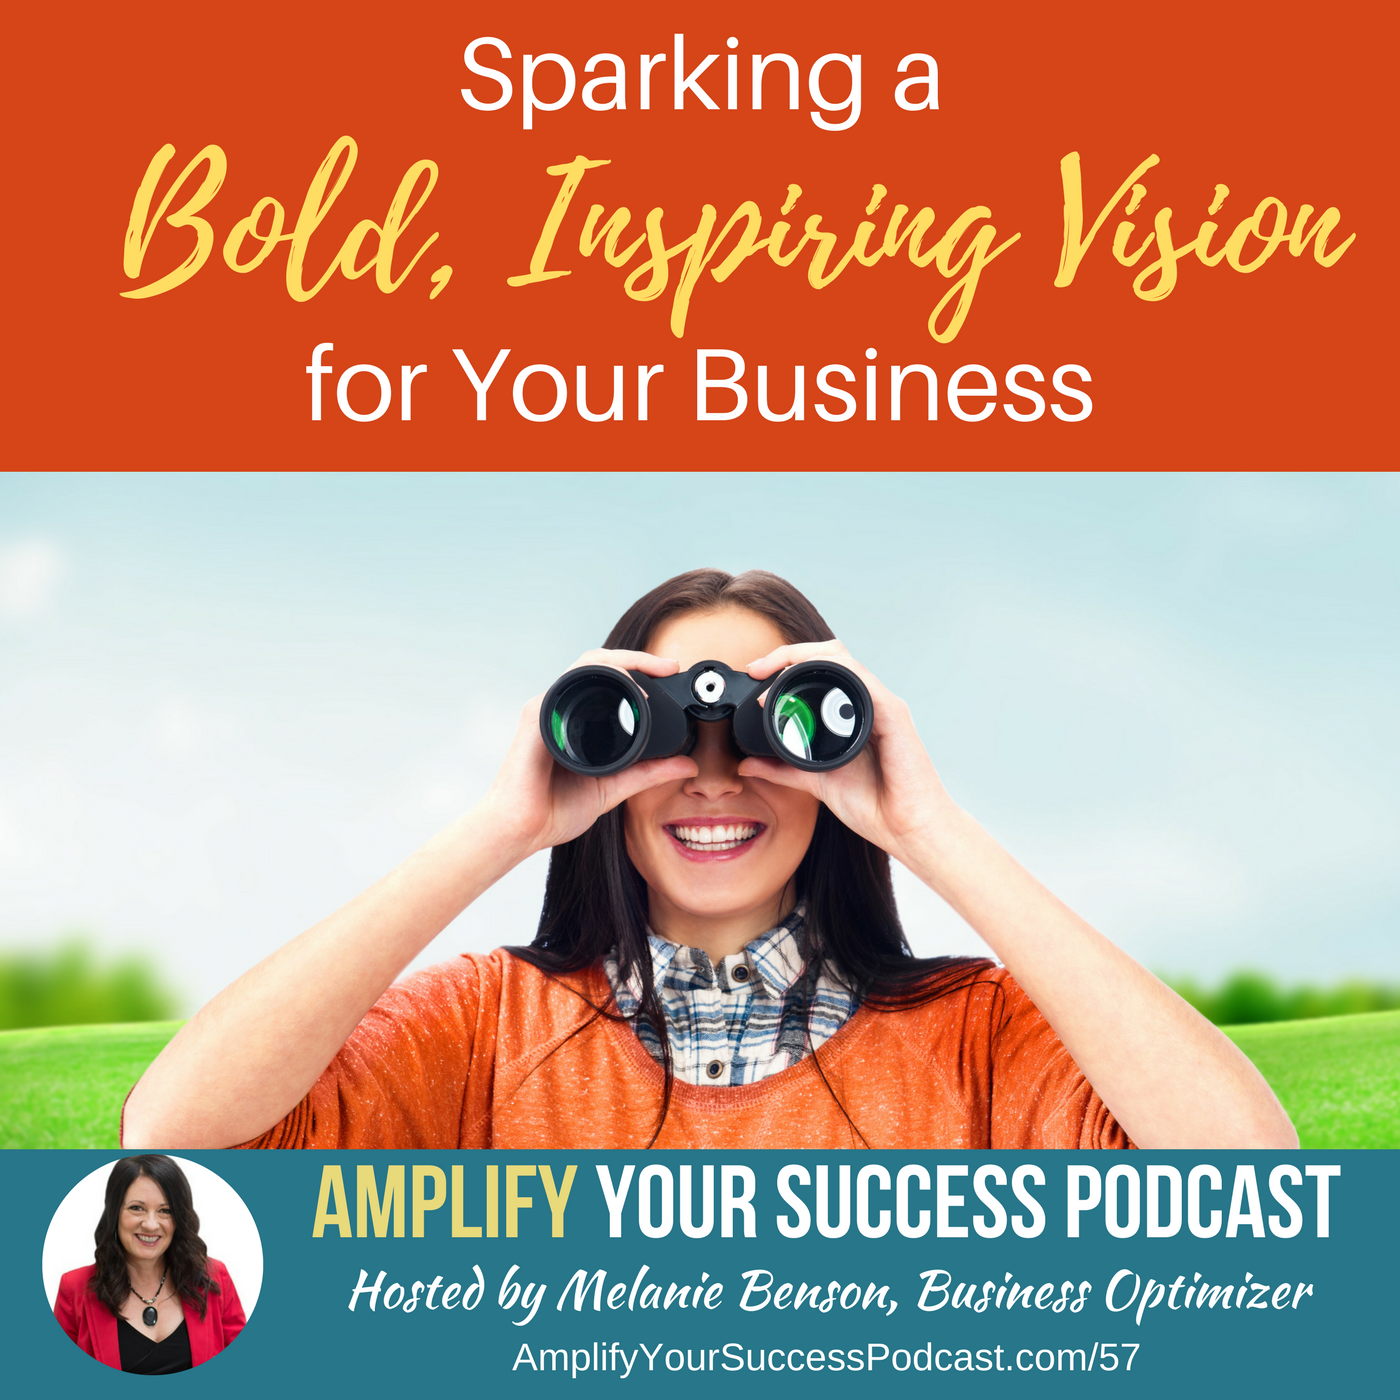 Spark a Bold, Inspiring Vision for Your Business